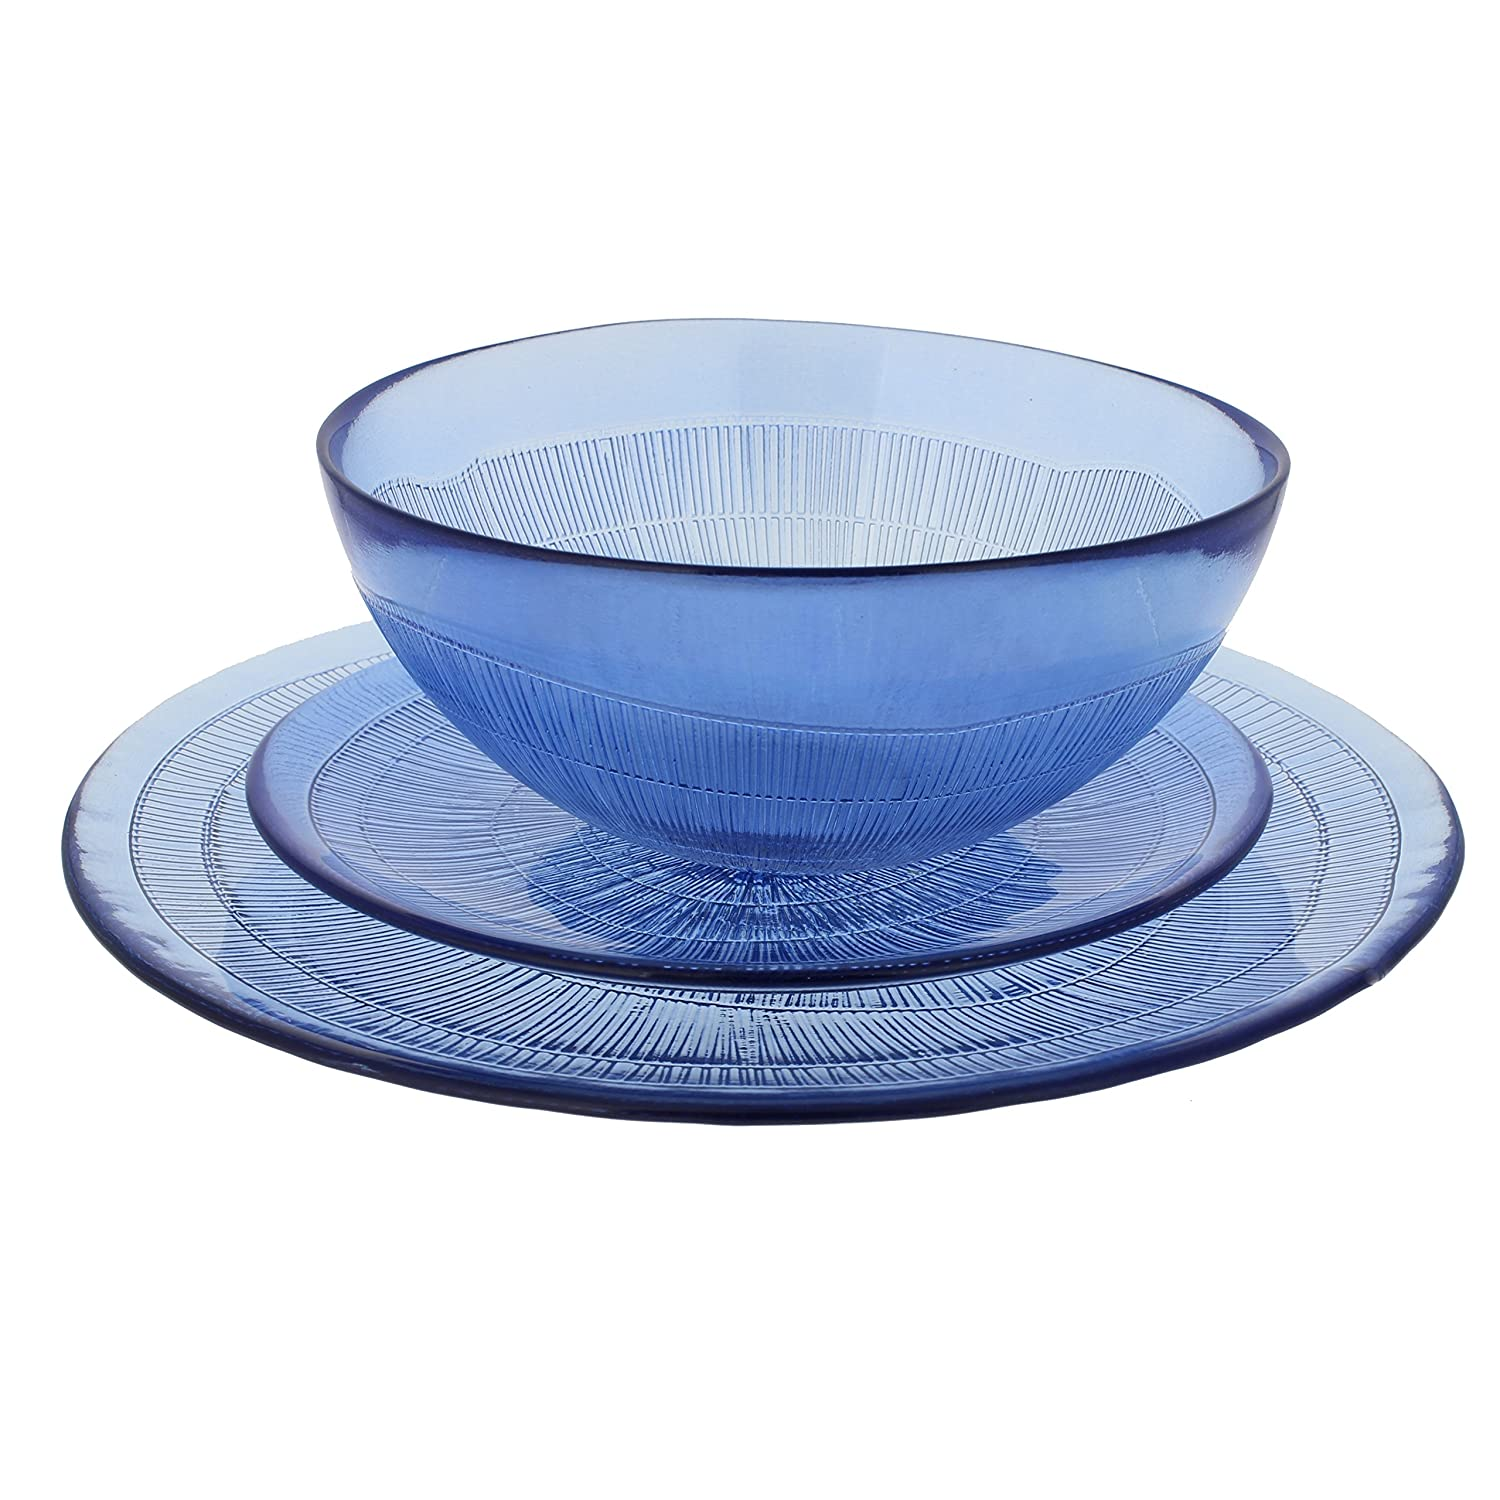 Finest Amazon.com | French Home Recycled Glass Dinner Set, Sapphire Blue  WF13